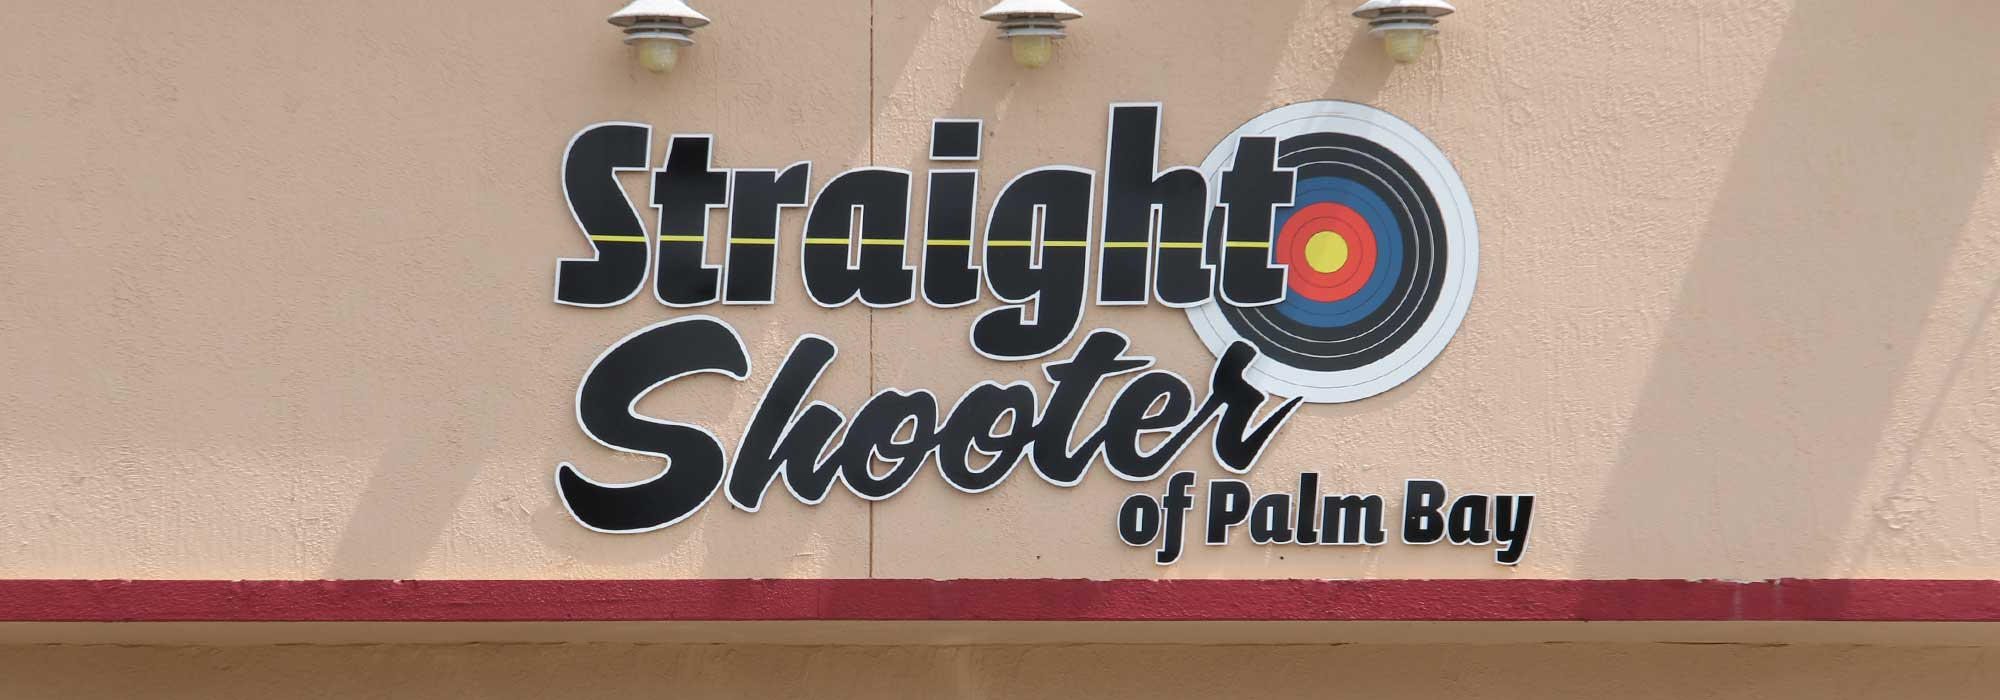 Straight Shooter of Palm Bay - One-Stop Shop For All of Your Safety Needs